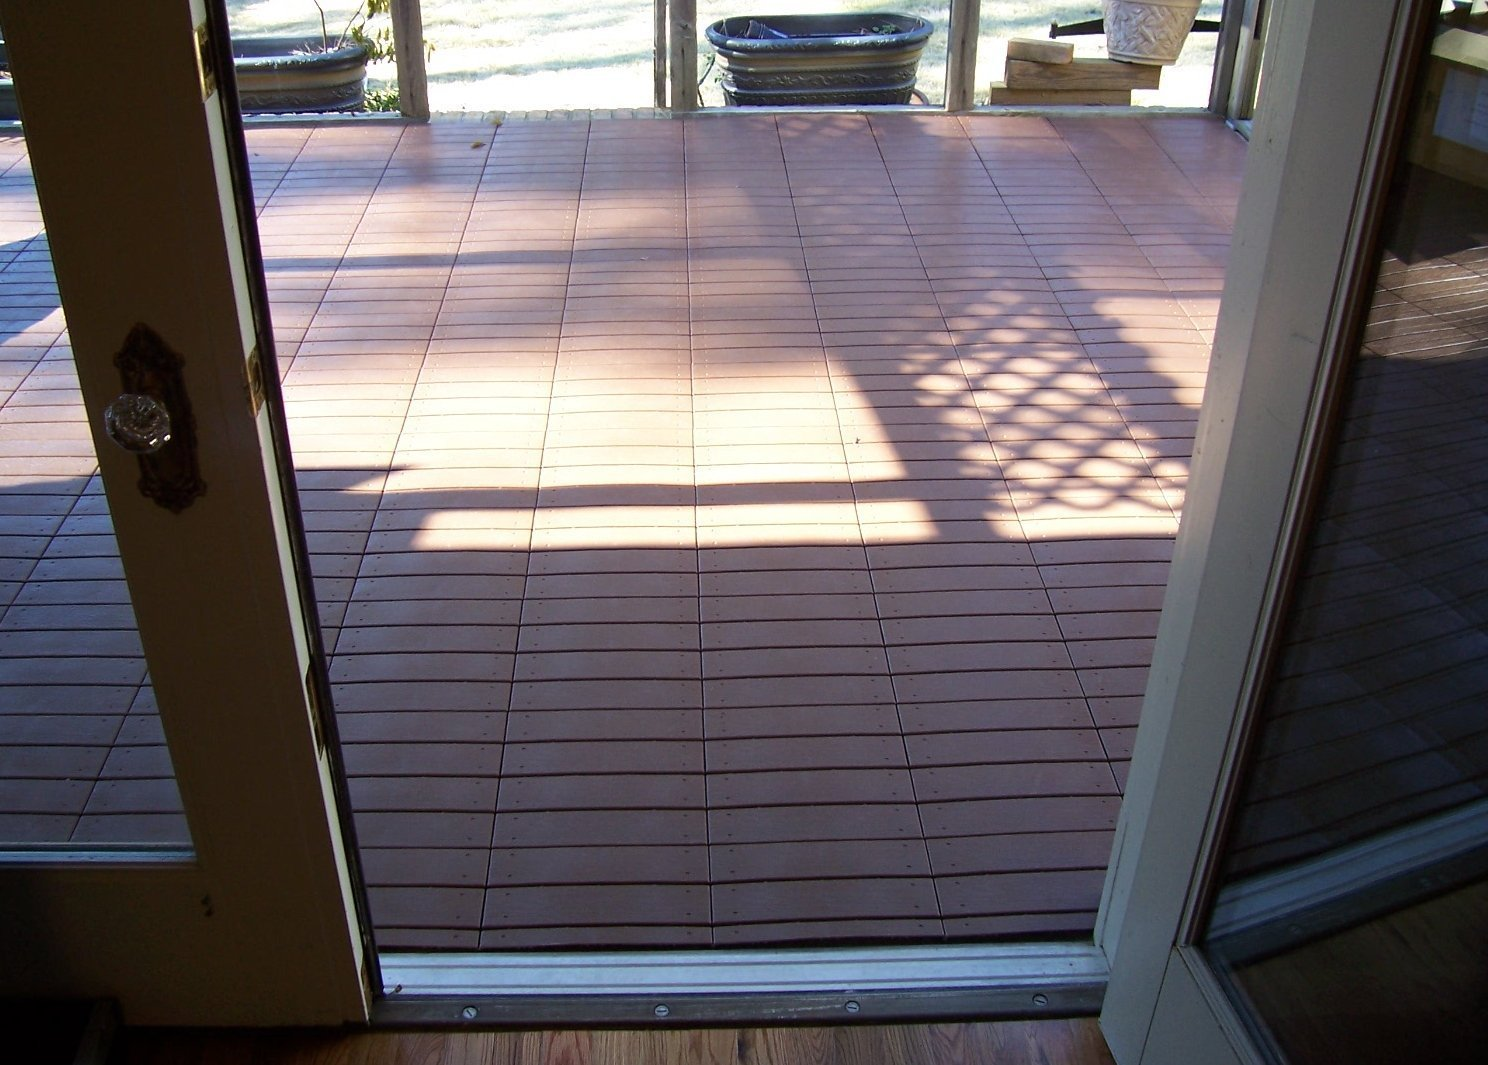 Cheap outdoor wood flooring tiles find outdoor wood flooring tiles get quotations starter kit of 22 tiles world class easylink deck tiles quick easy dailygadgetfo Gallery